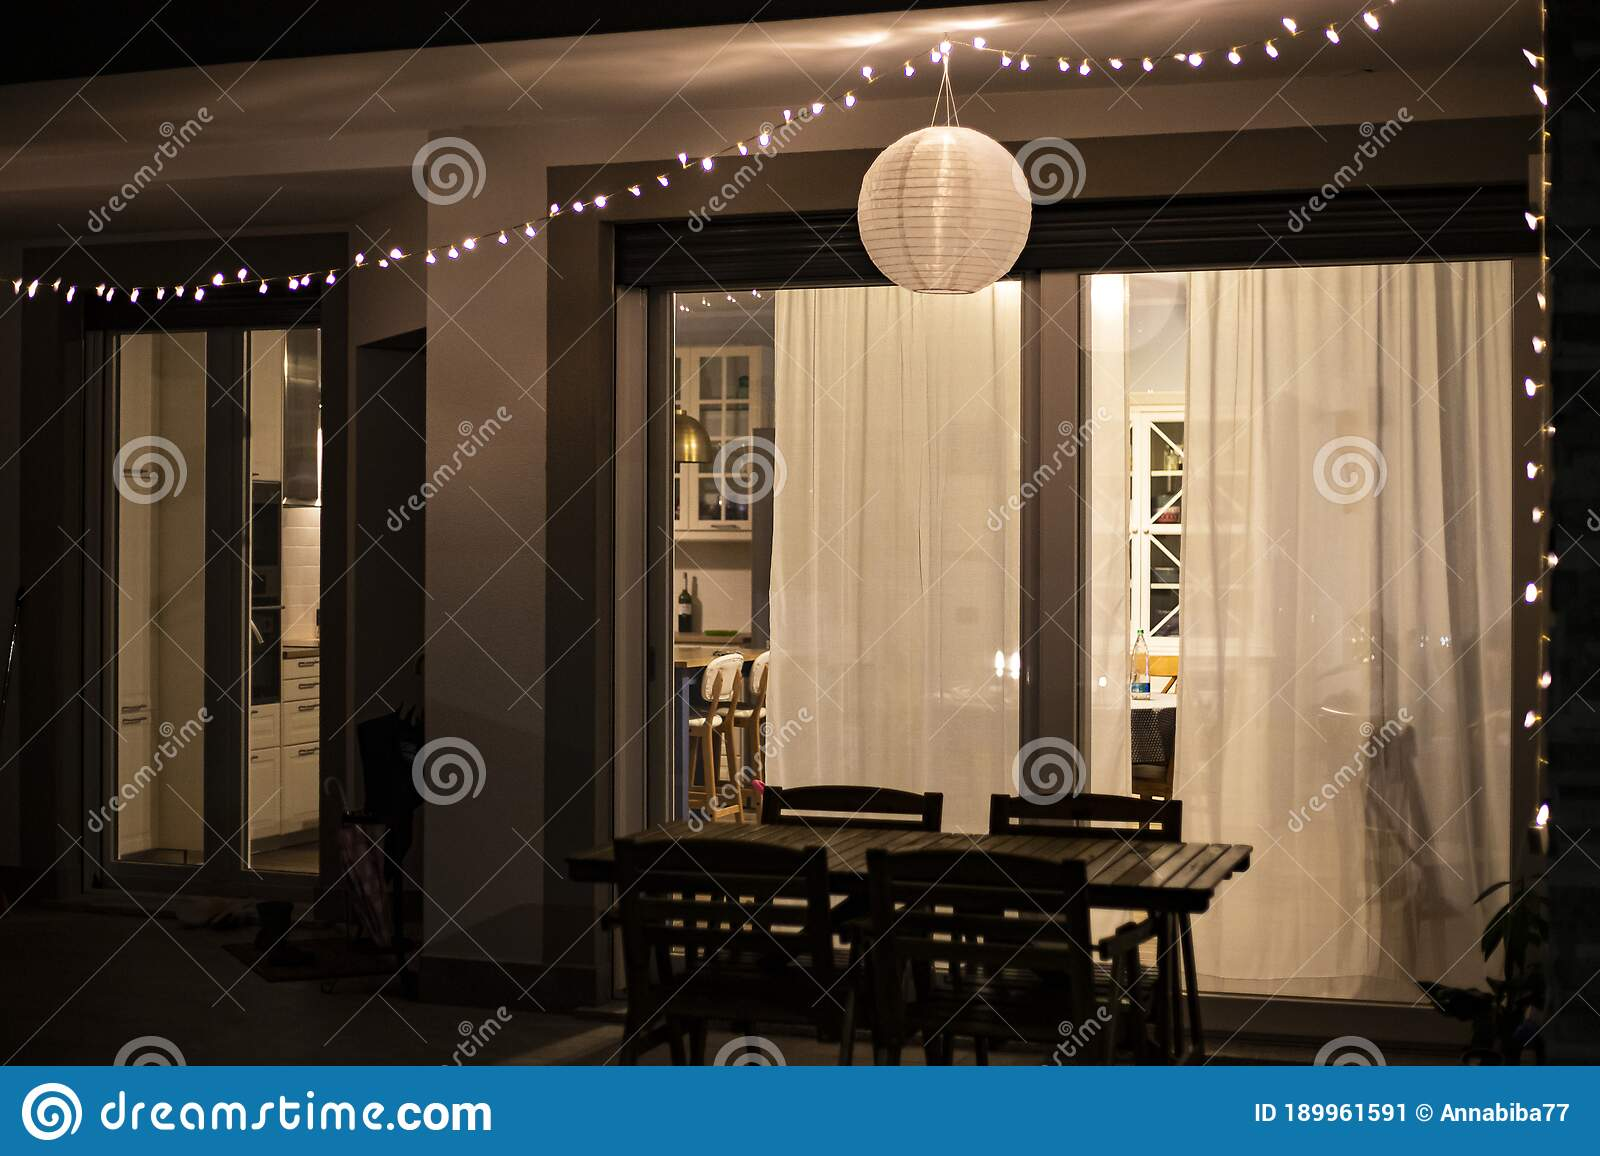 Home Decor Idea With String Lights And Globe Lantern Hanging In The Front Porch In The Outdoor Dining Area Stock Image Image Of Lantern Inspiration 189961591